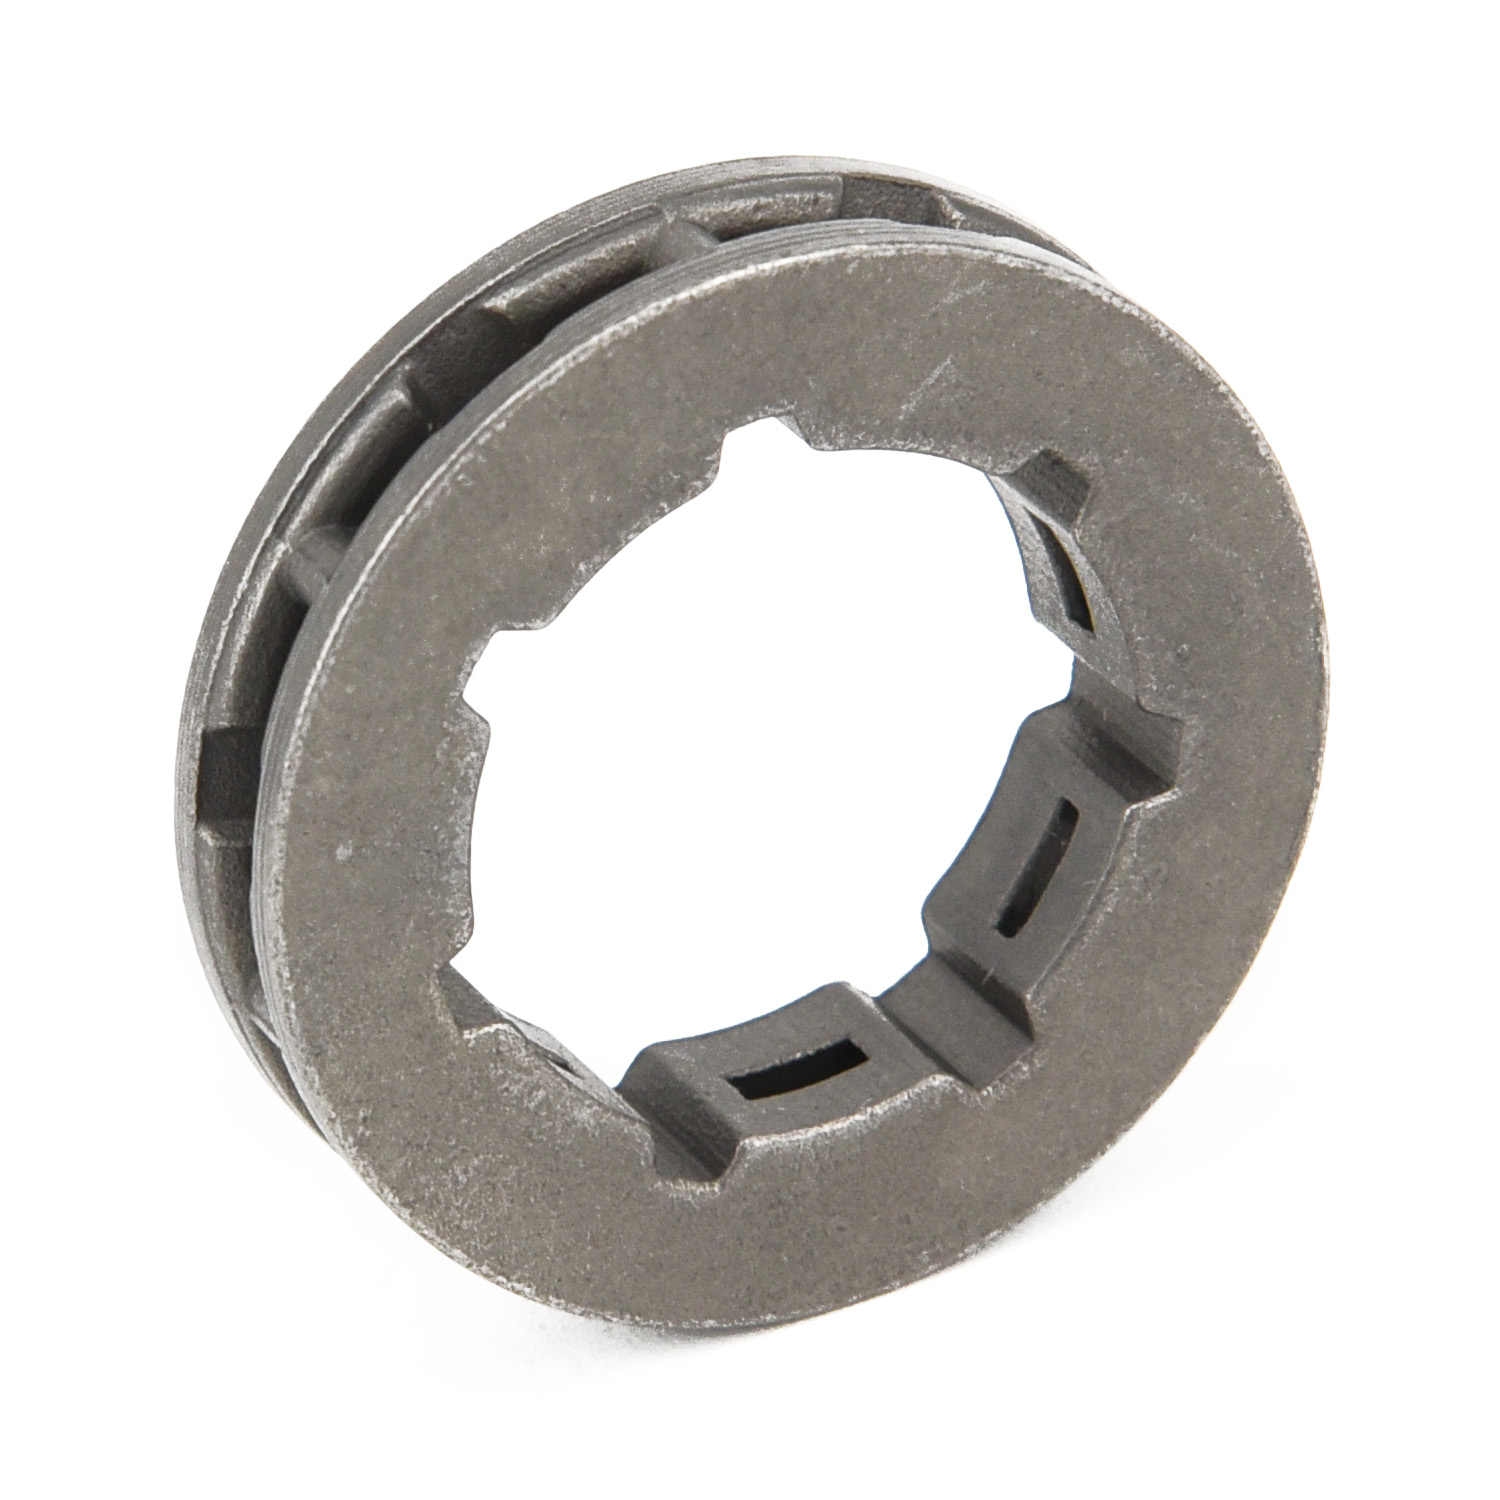 """3/8 """"7 Tand Tandwiel Velg Vervanging Voor Stihl MS720 064 066 MS640 MS660 084 088 MS880"""